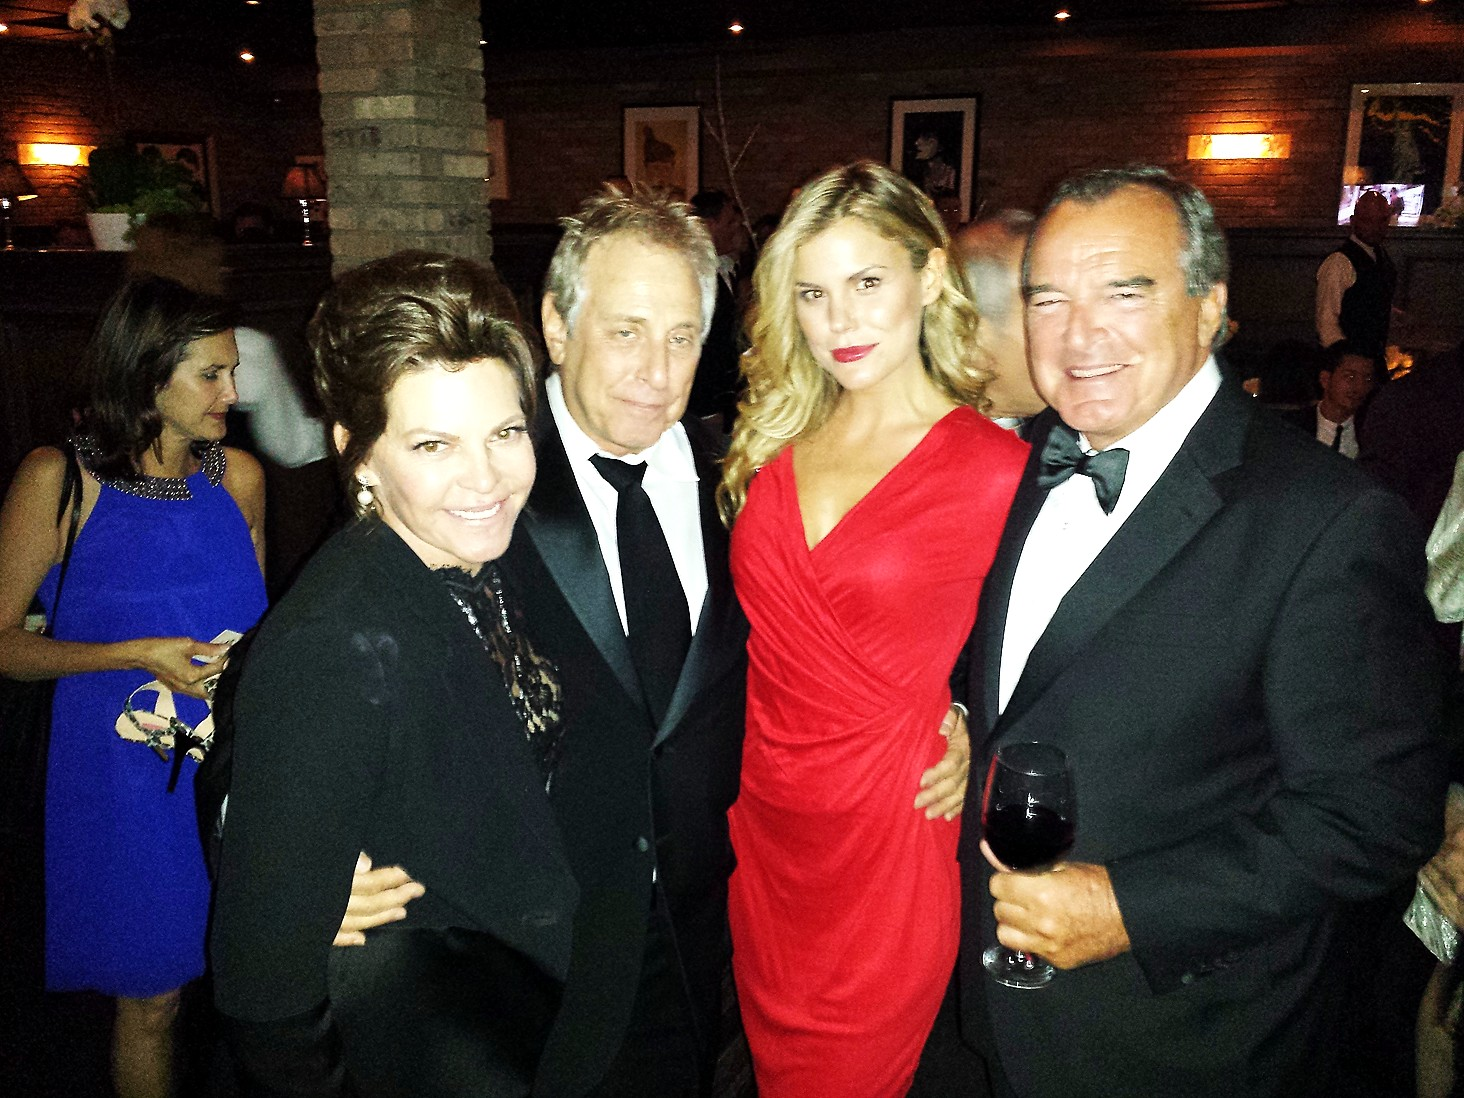 Stephanie Haymes + Charles Roven + Rosalind Lipsett + Sony After Party + Golden Globes + Craig's